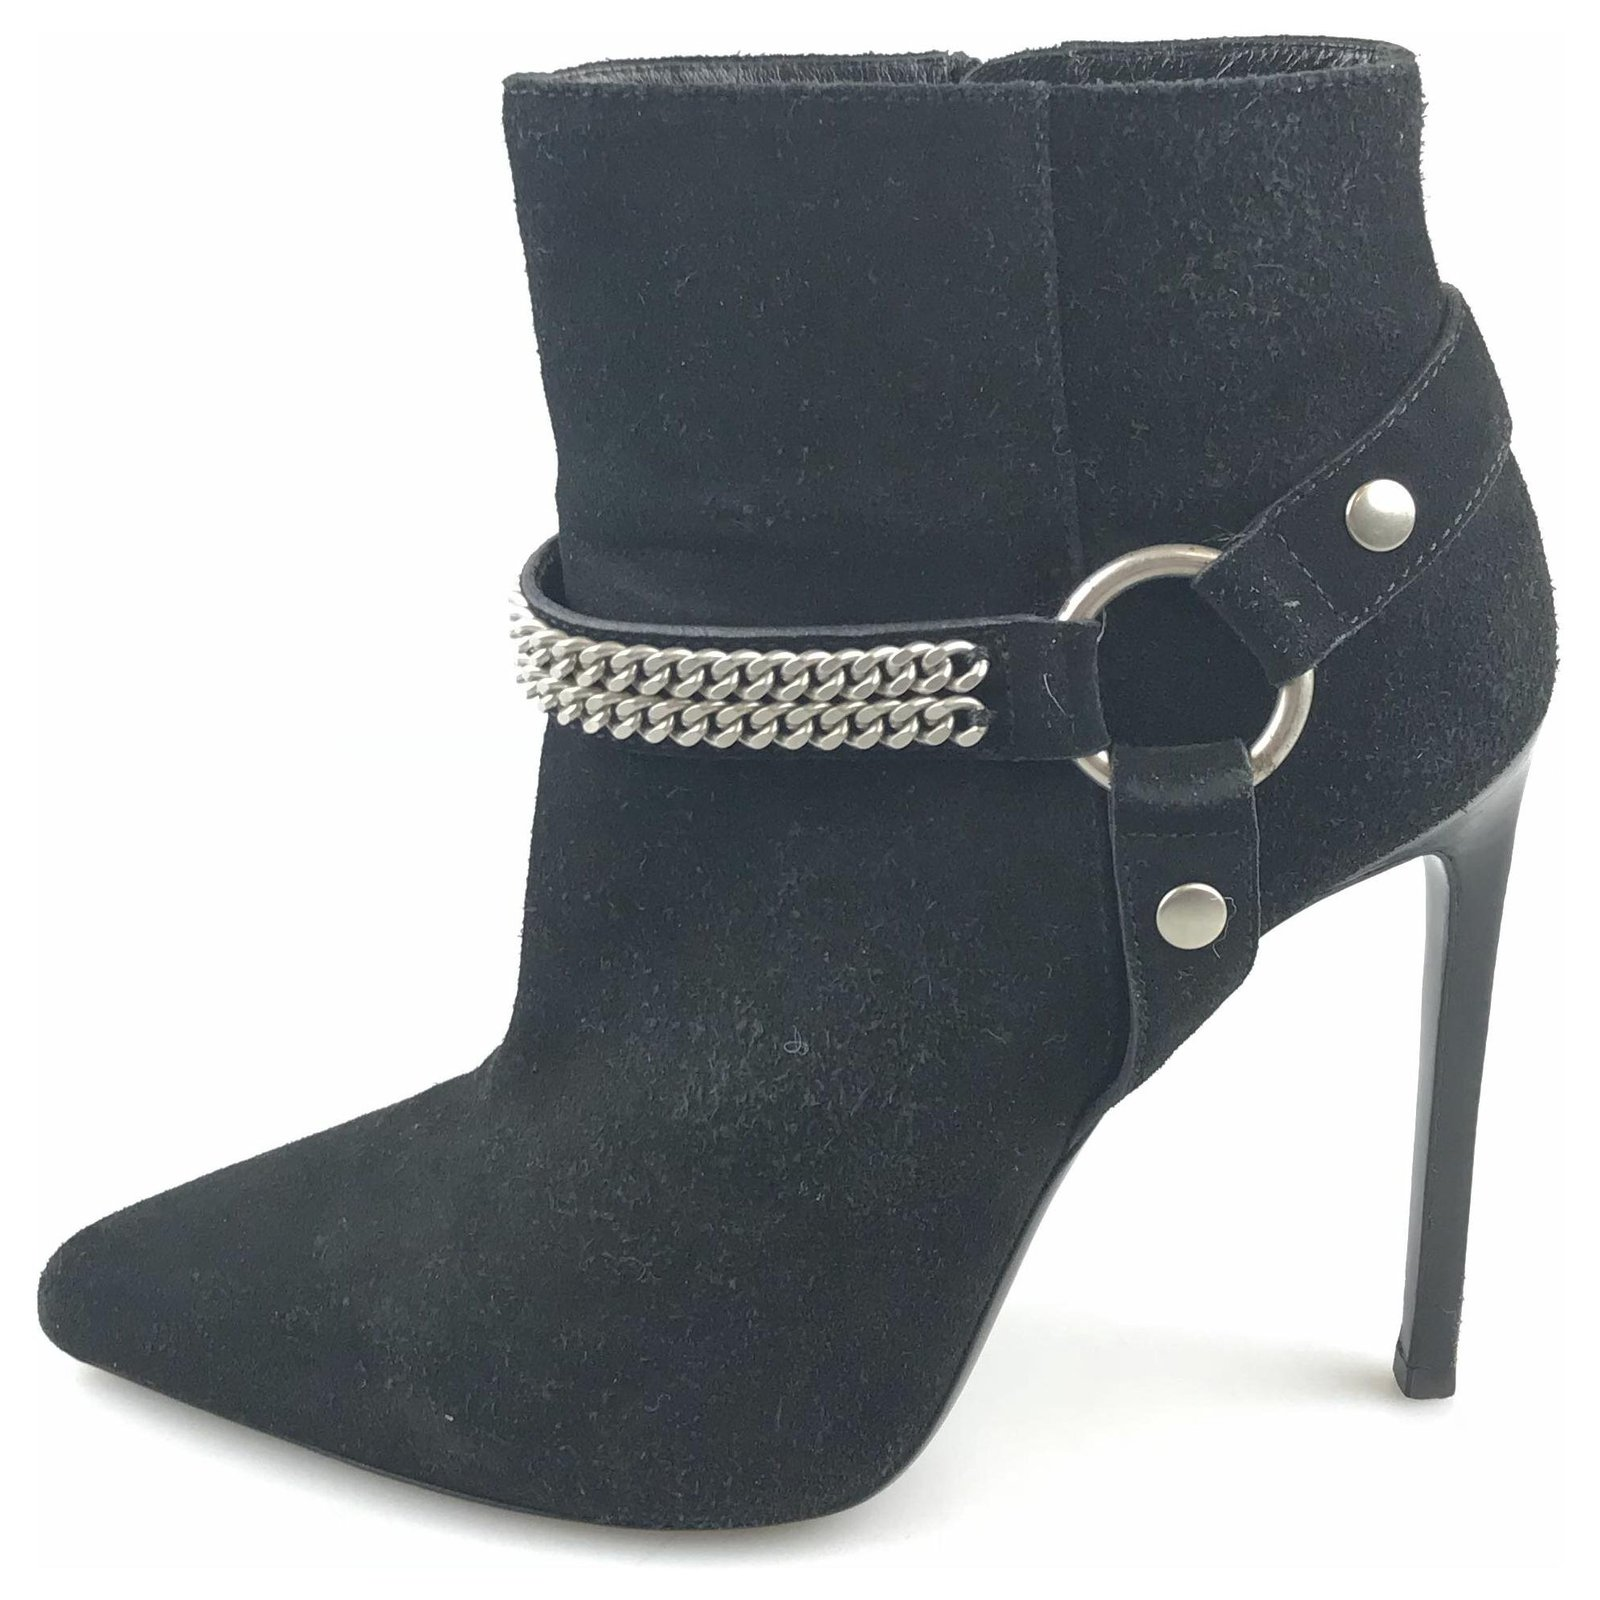 c8c7000d5c YSL Black Suede Ankle Boot